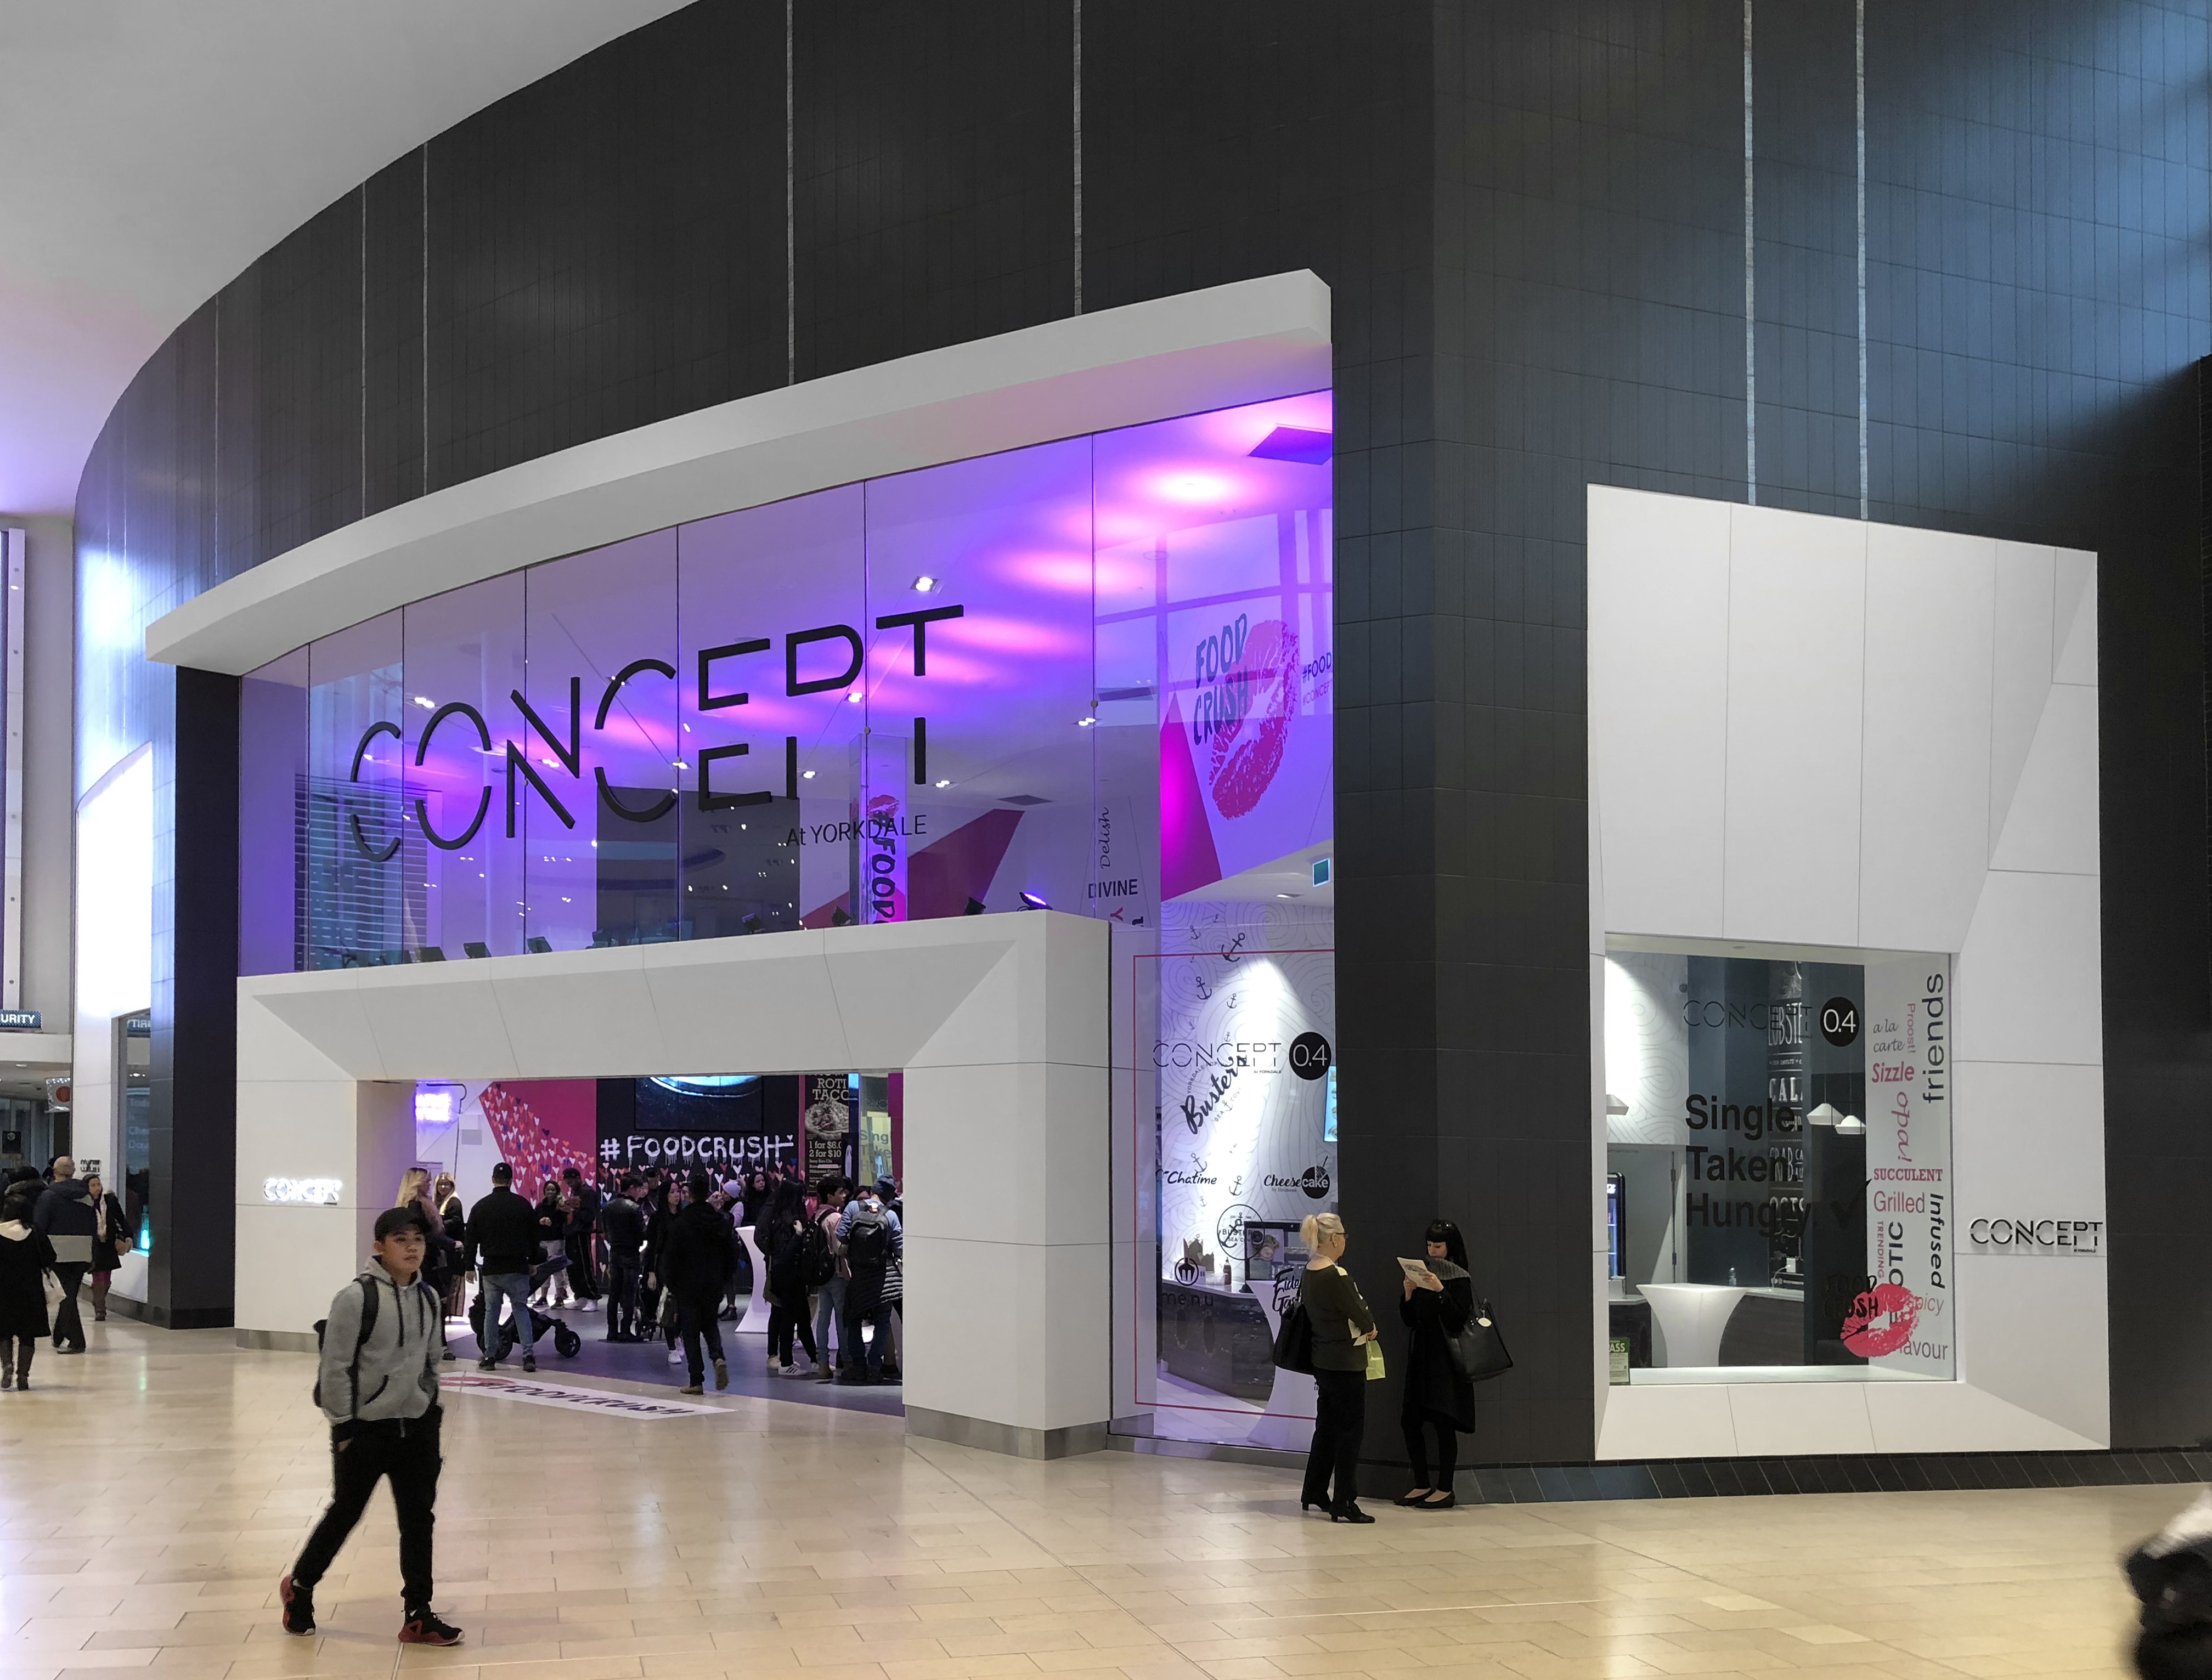 Concept Yorkdale mall entrance with Concept sign and purple lighting